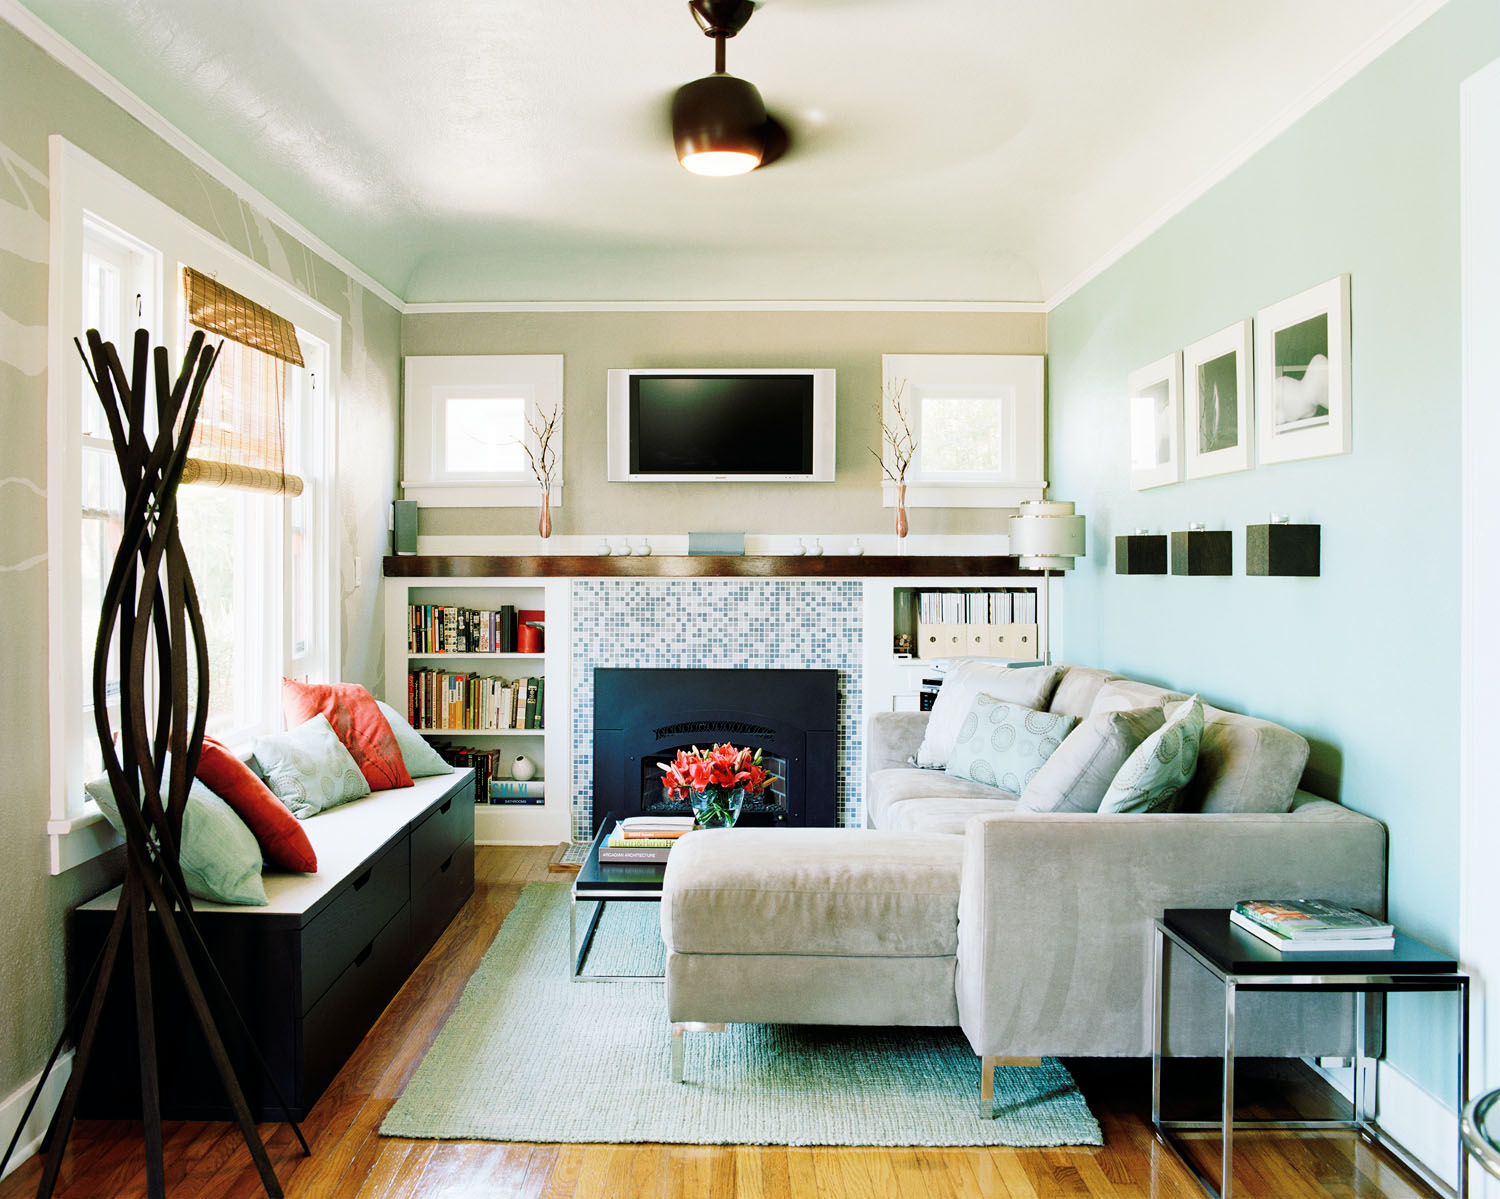 12 Ways to Maximize a Small Living Room - Sunset Magazine on Small Living Room  id=69417